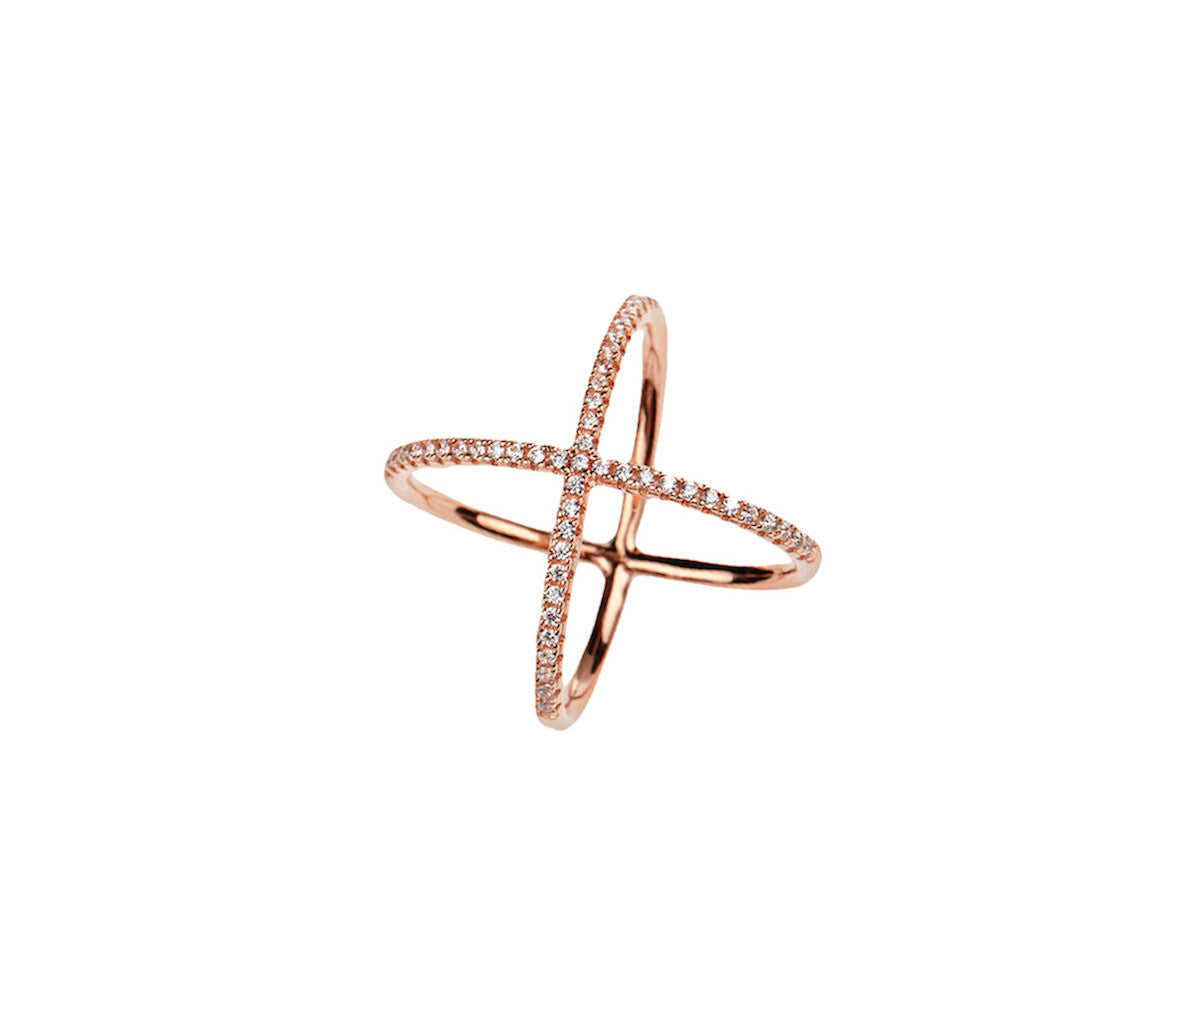 Silver in 1 micron Rose Gold Crossed-Orbits Ring